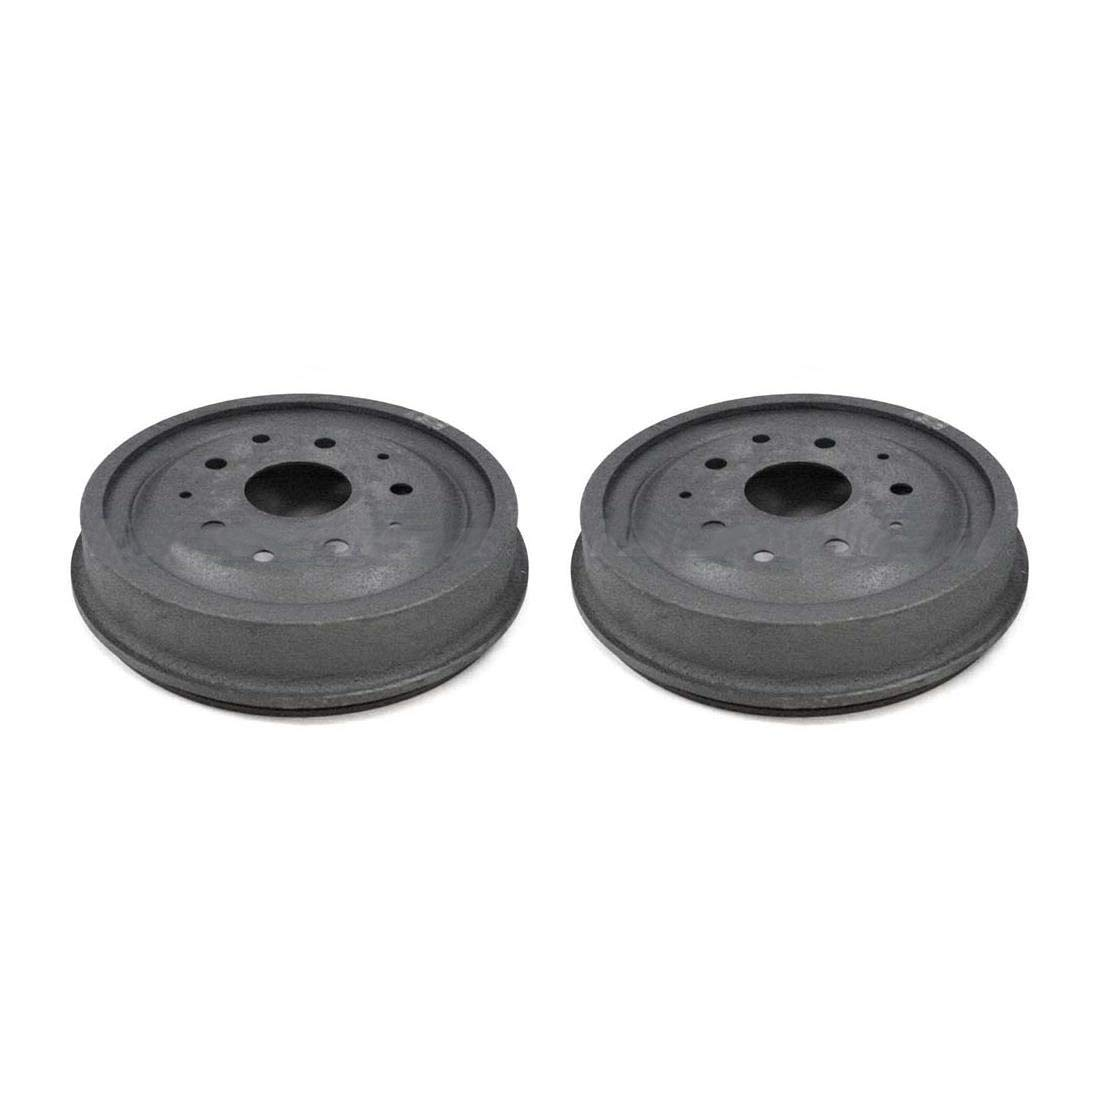 AutoDN Rear Brake Drum 2PCS For 1953-1967 Ford F-100